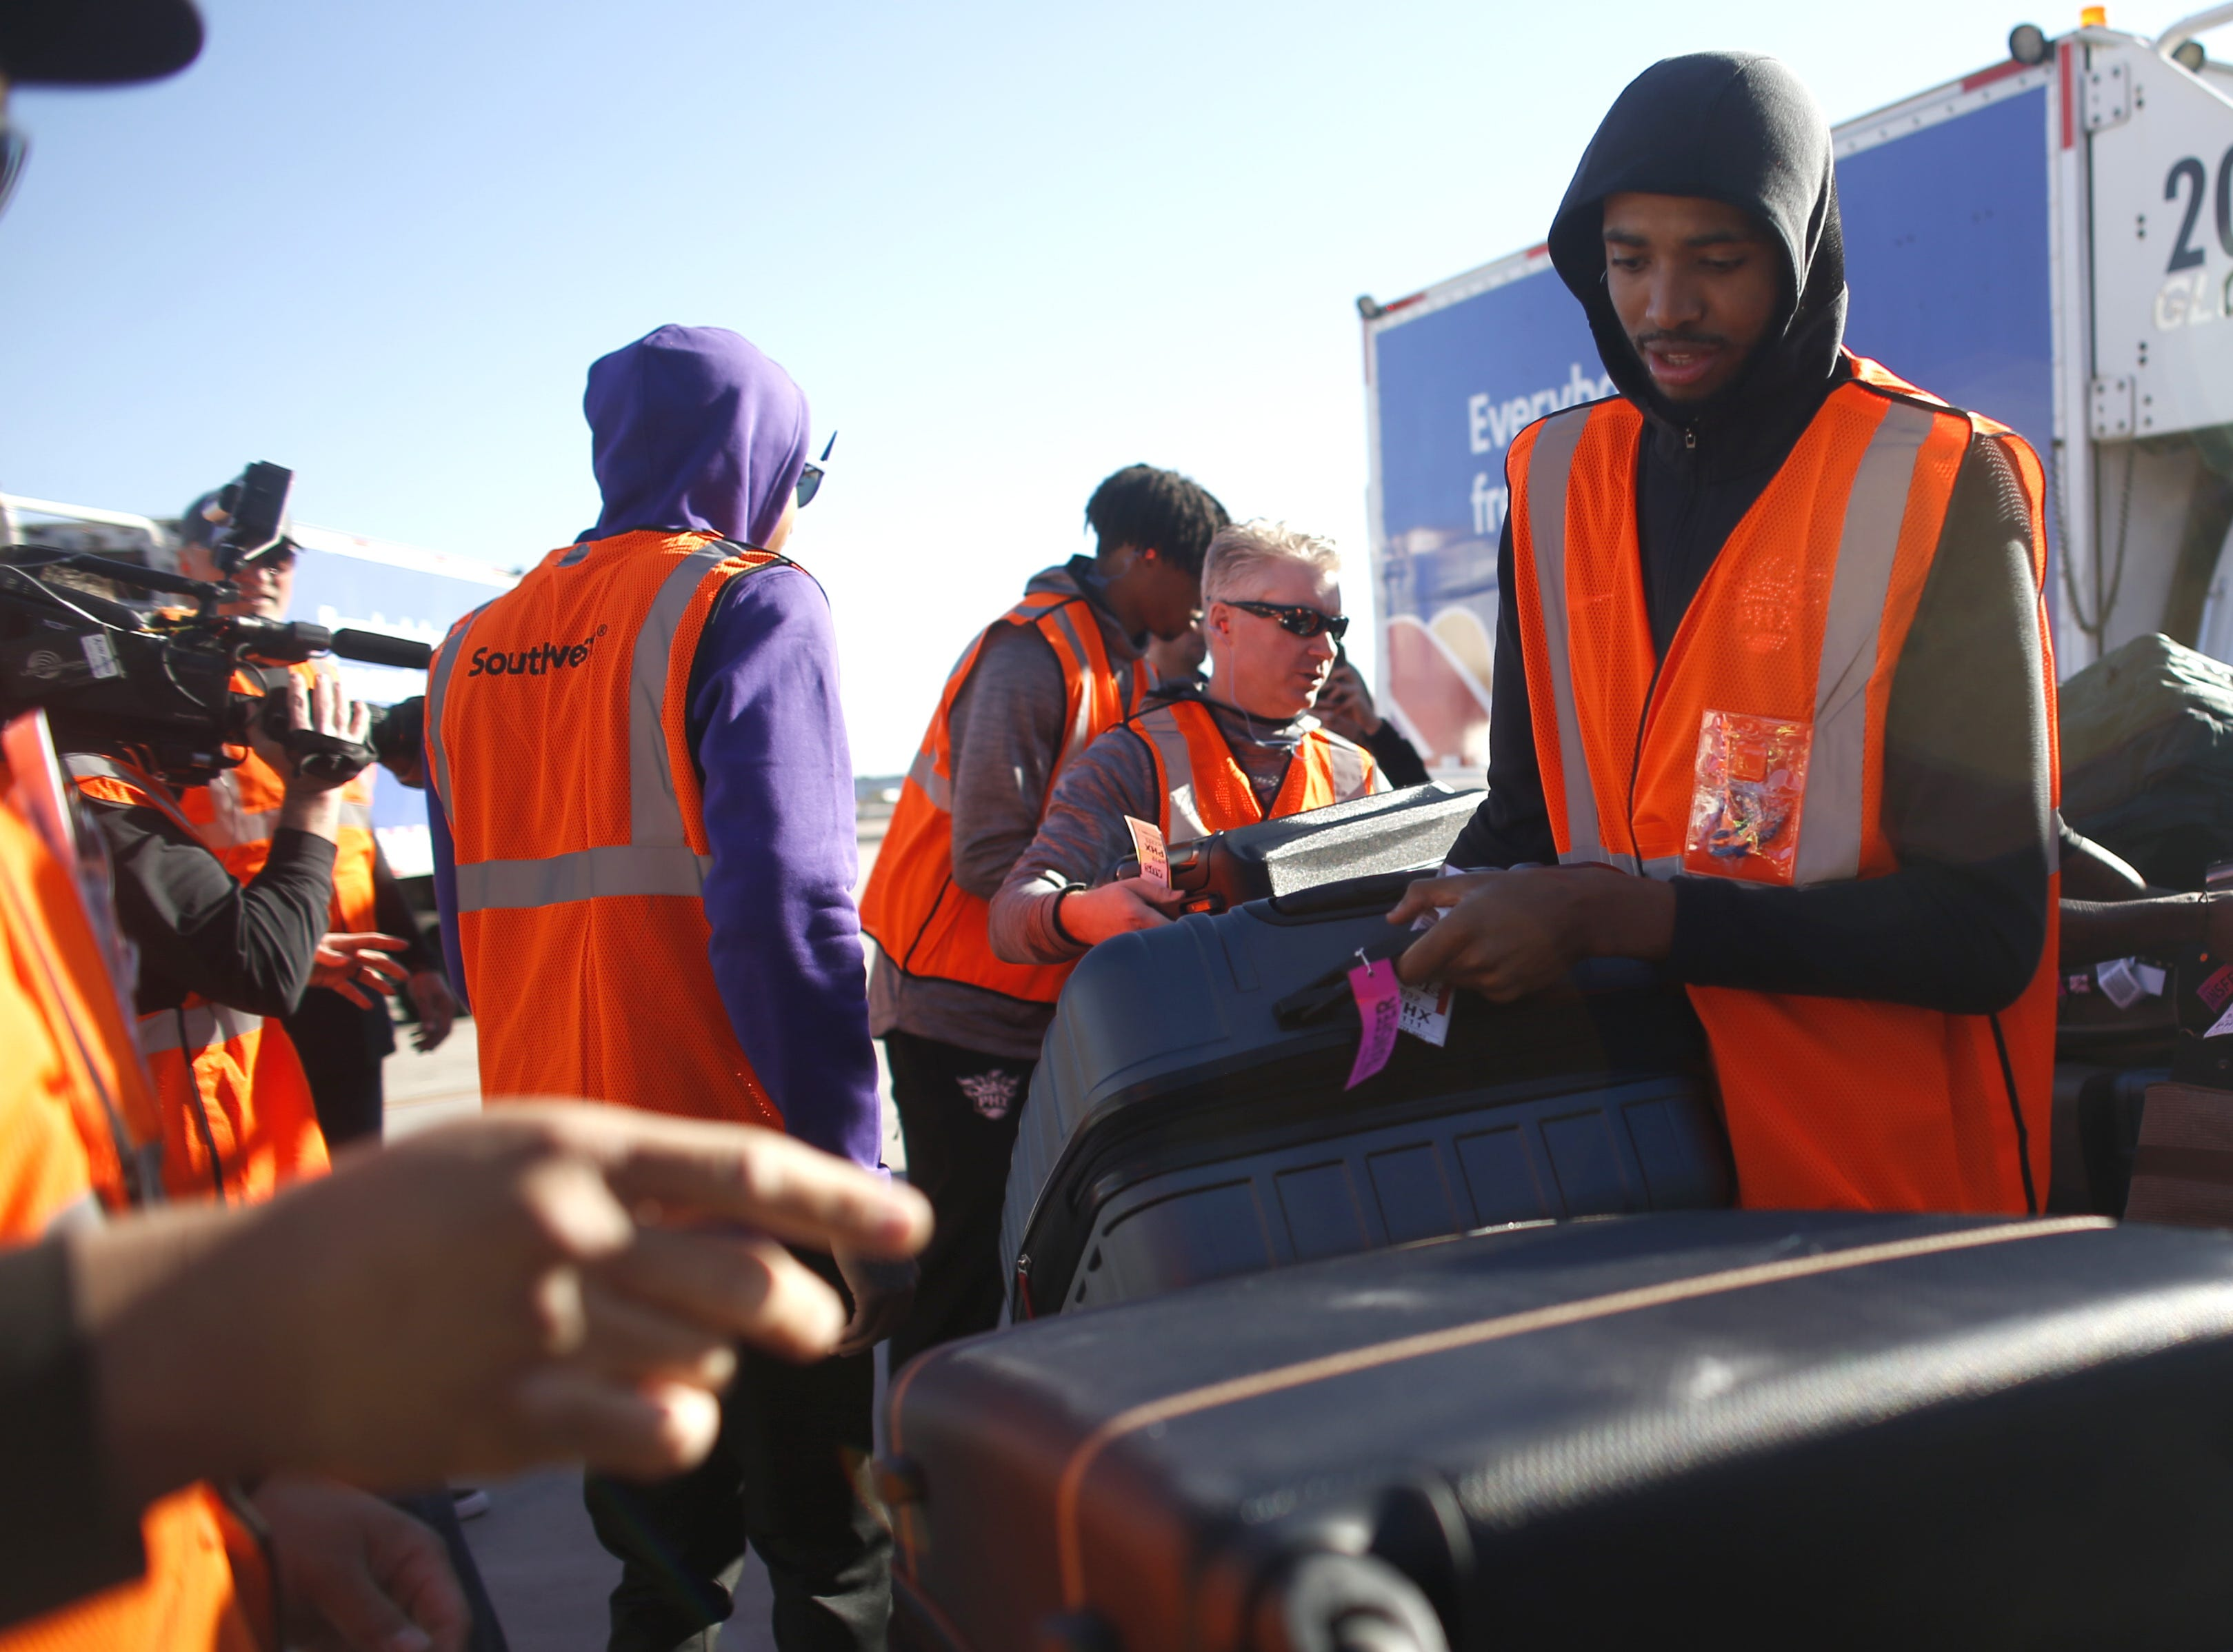 "Suns' Mikal Bridges places a bag on the conveyor belt during a Suns and Southwest ""trading places"" event where players took on the roles of Southwest Airlines employees at Phoenix Sky Harbor Airport in Phoenix, Ariz. on February 7, 2019."